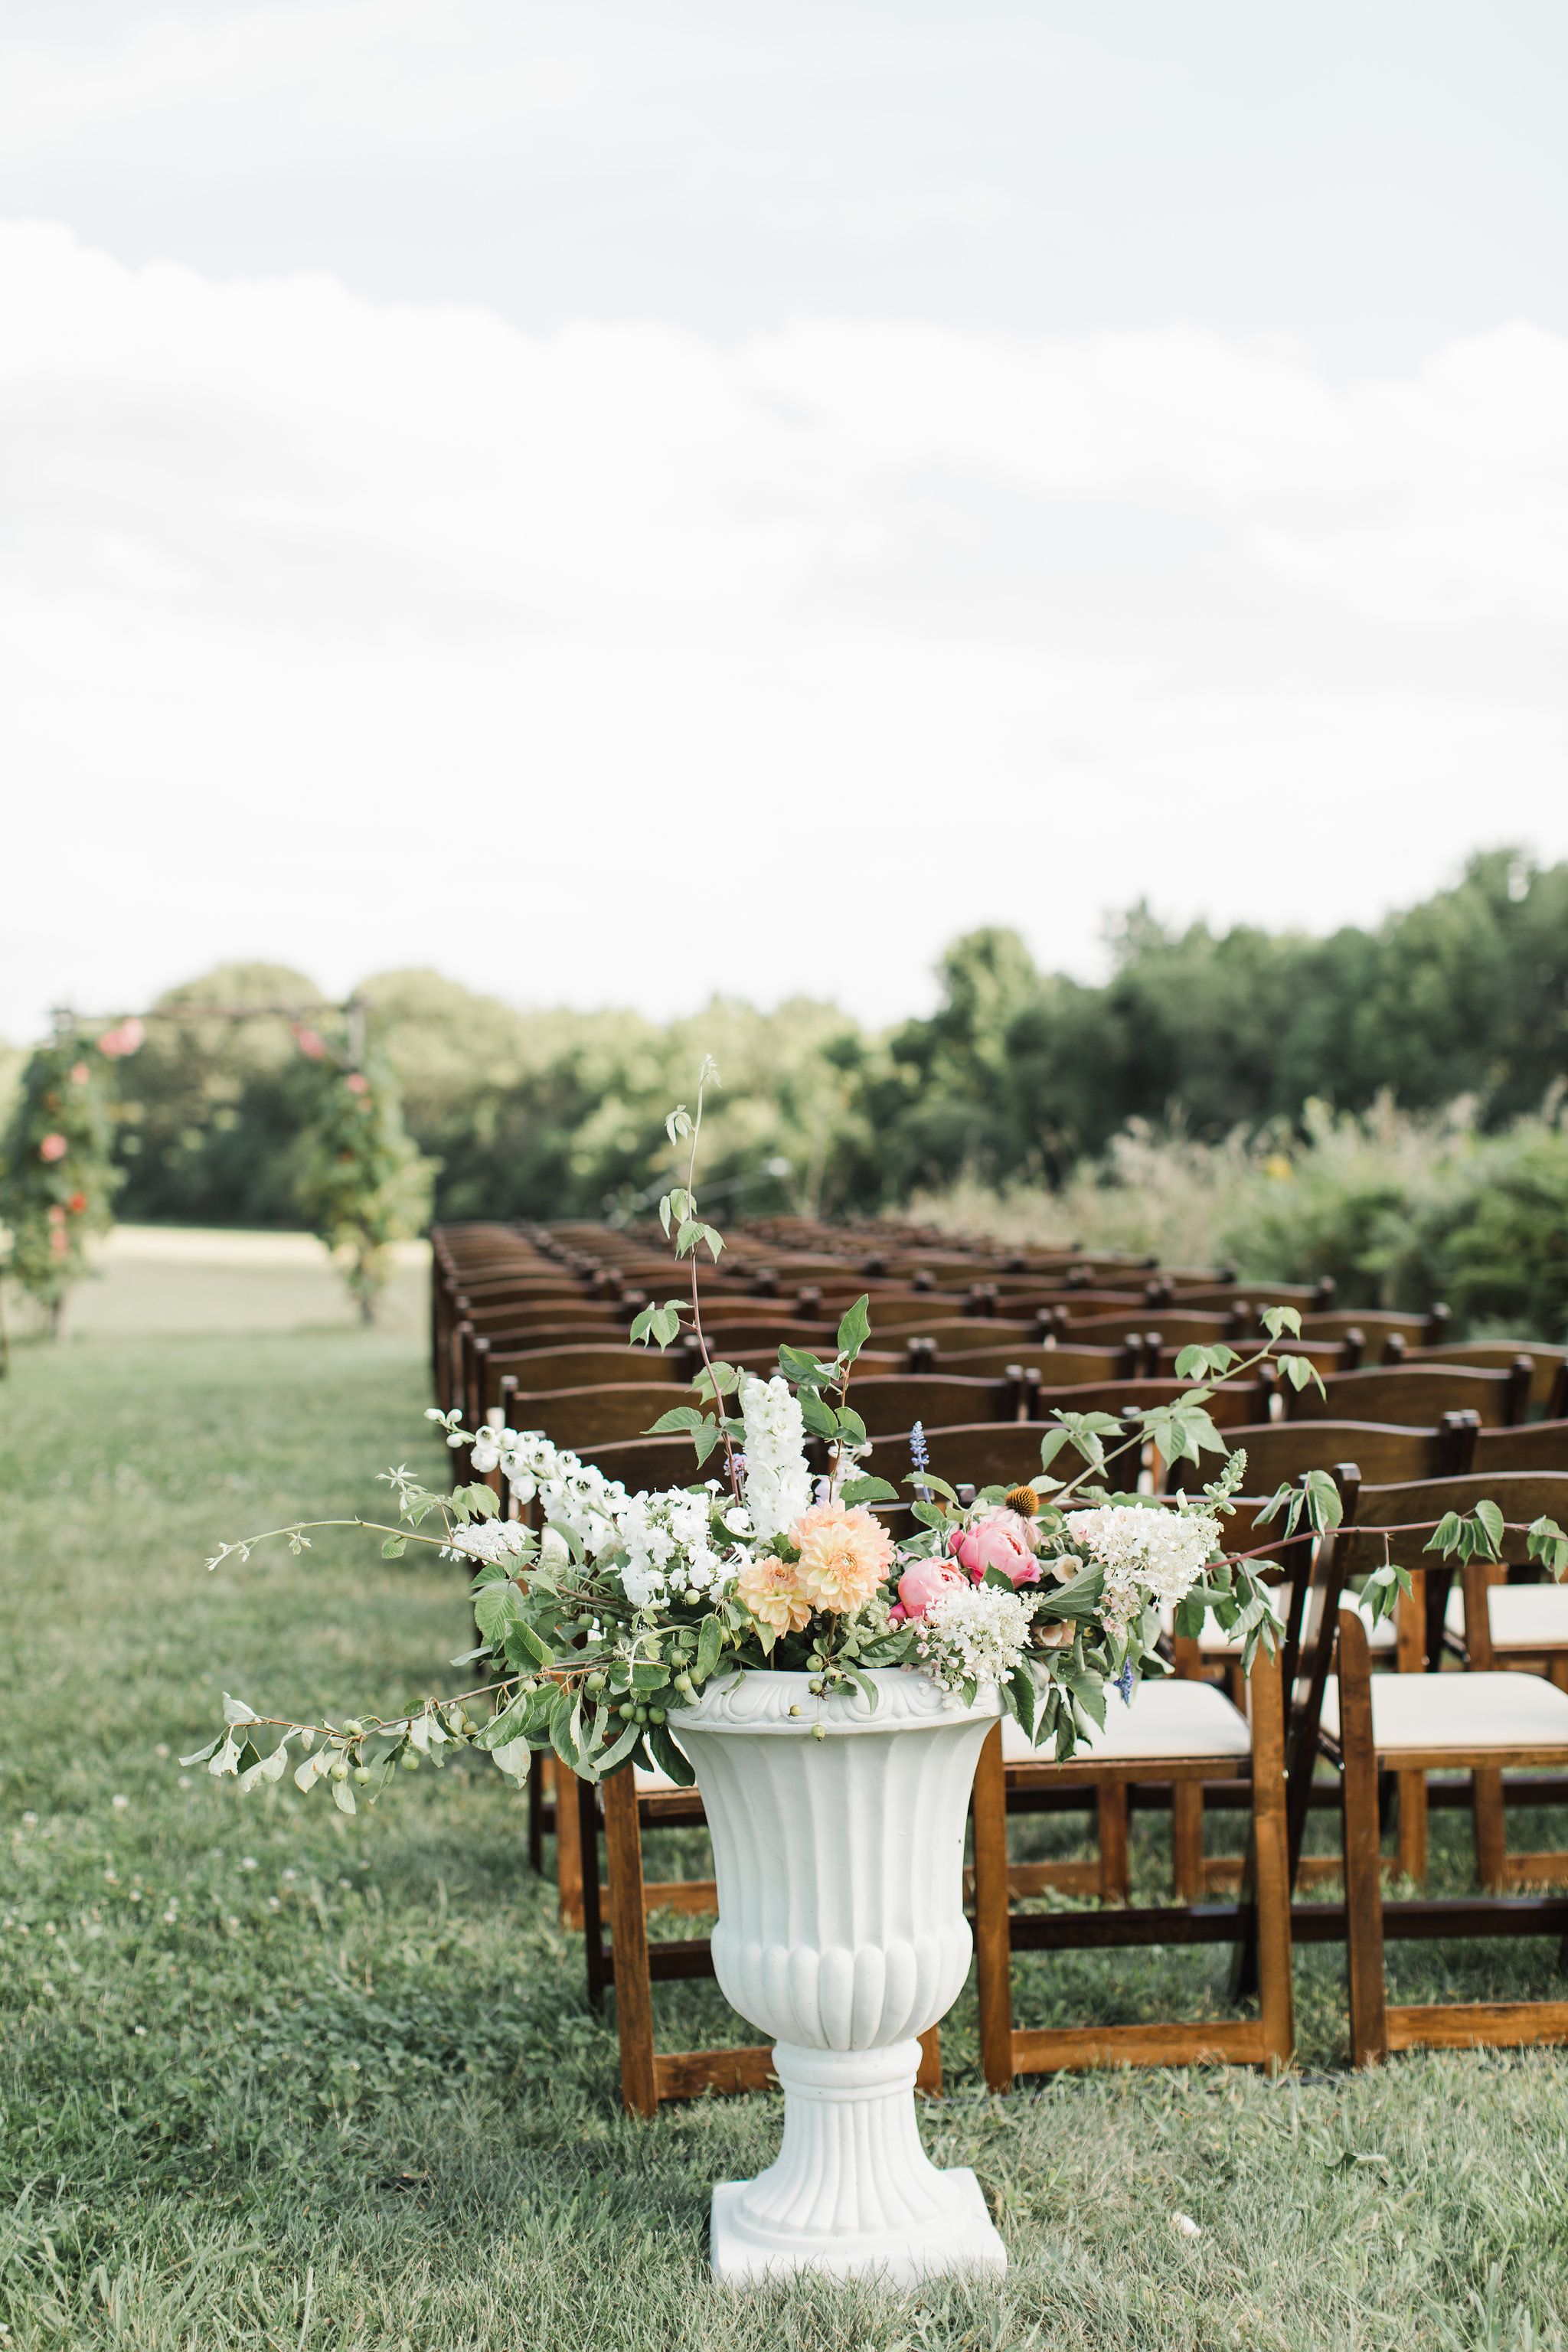 Watershed-Floral-Shady-Lane-Farm-Maine-Field-Ceremony-Wedding-11.jpg